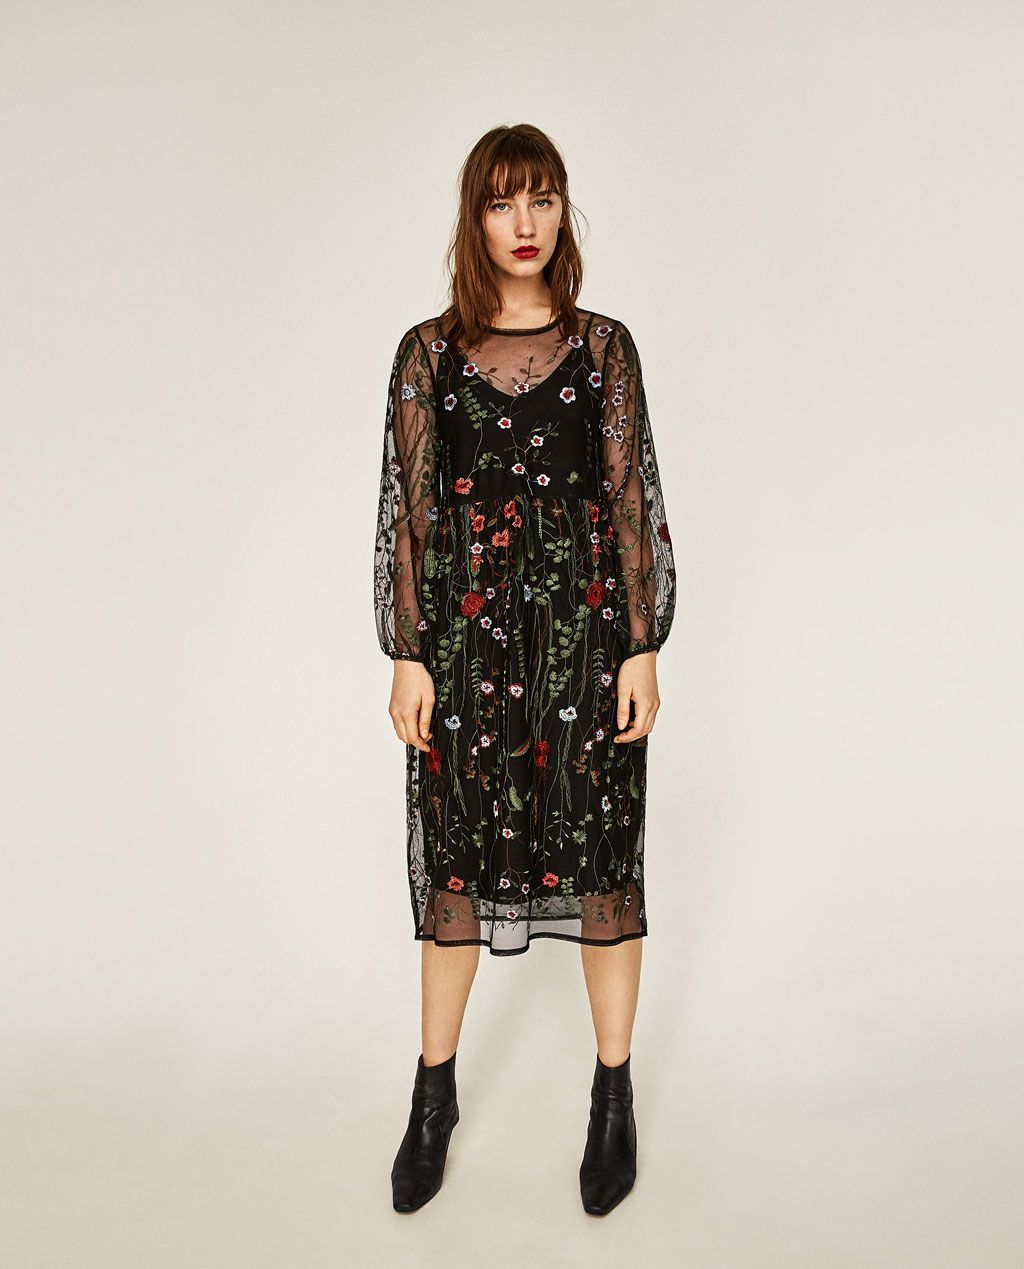 Long Floral Embroidered Dress Dresses Woman Sale Zara United